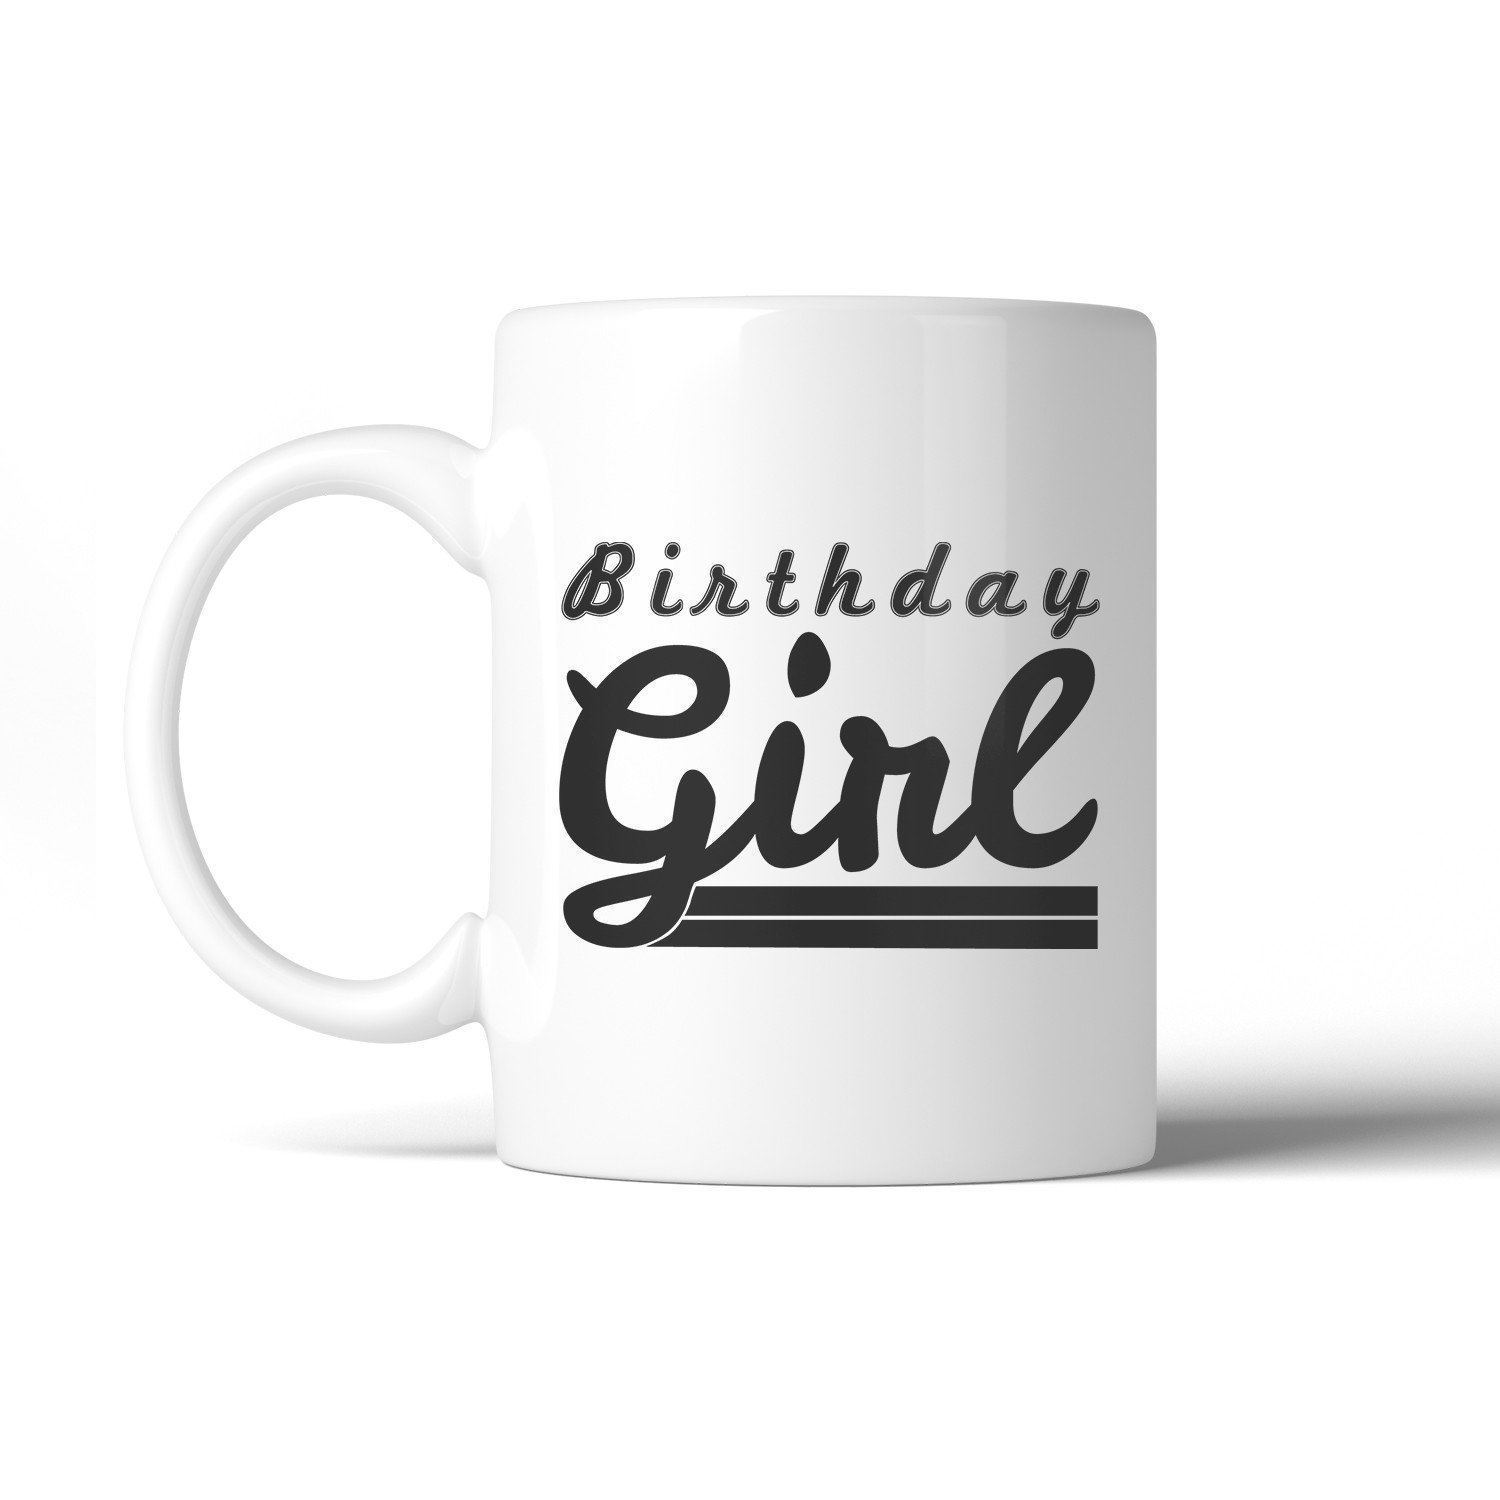 Primary image for Birthday Girl White Mug